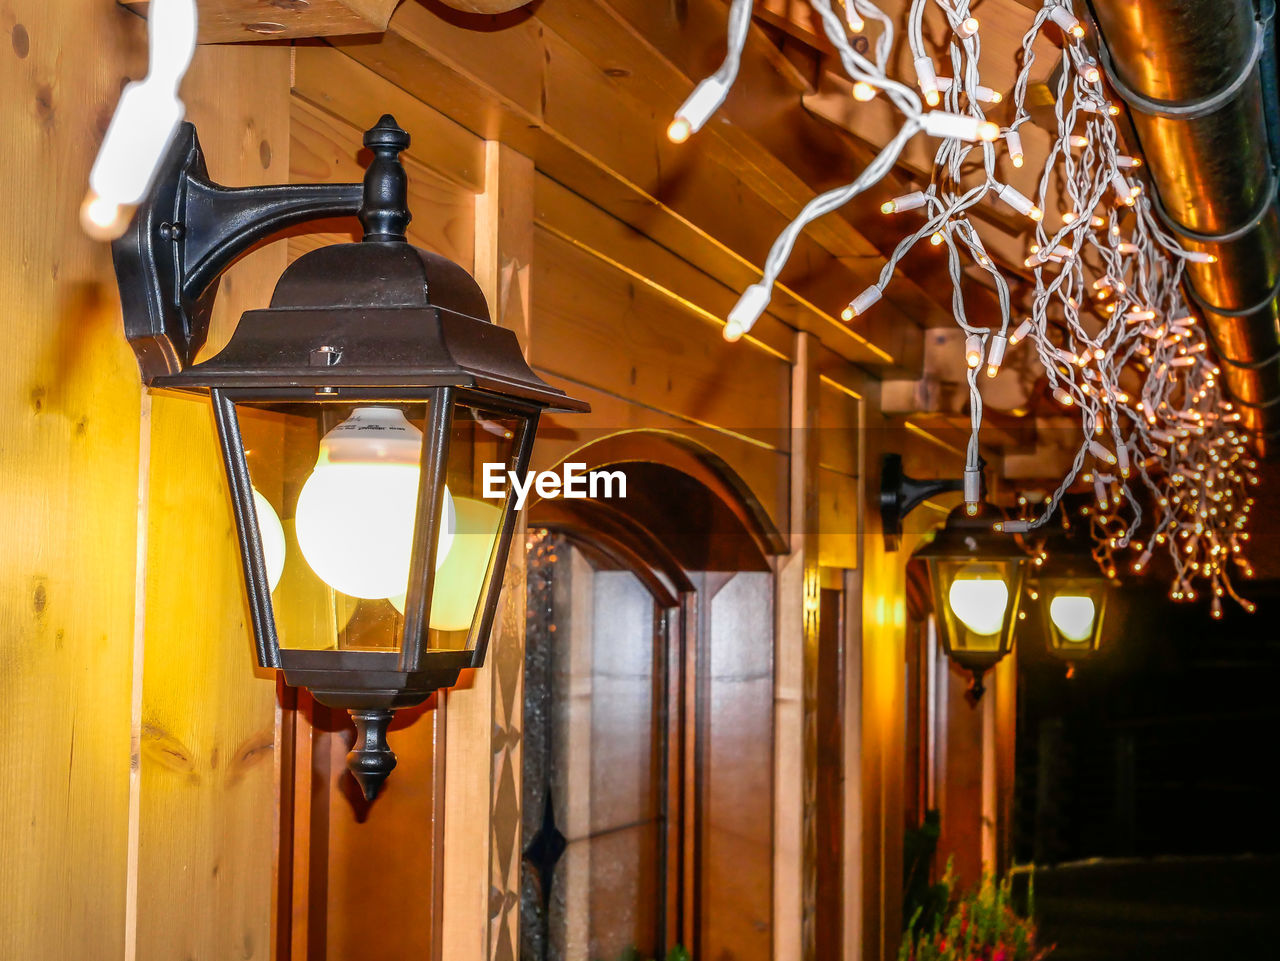 lighting equipment, illuminated, architecture, no people, hanging, light, focus on foreground, low angle view, indoors, built structure, electric lamp, electricity, electric light, glowing, wood - material, decoration, building, light - natural phenomenon, lantern, glass - material, ceiling